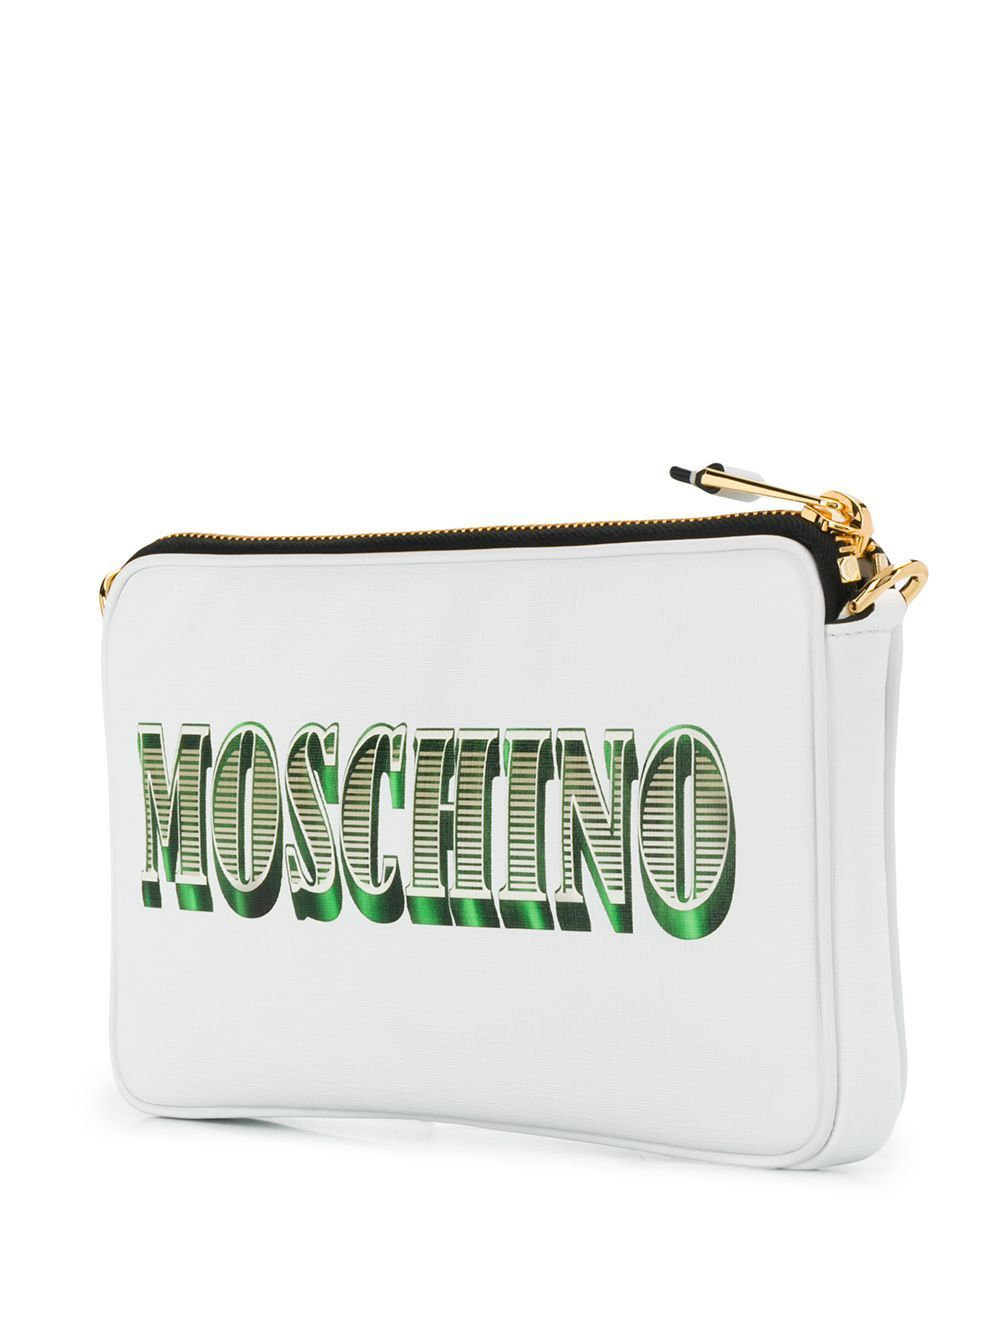 MOSCHINO WOMEN'S A756782103001 WHITE LEATHER POUCH